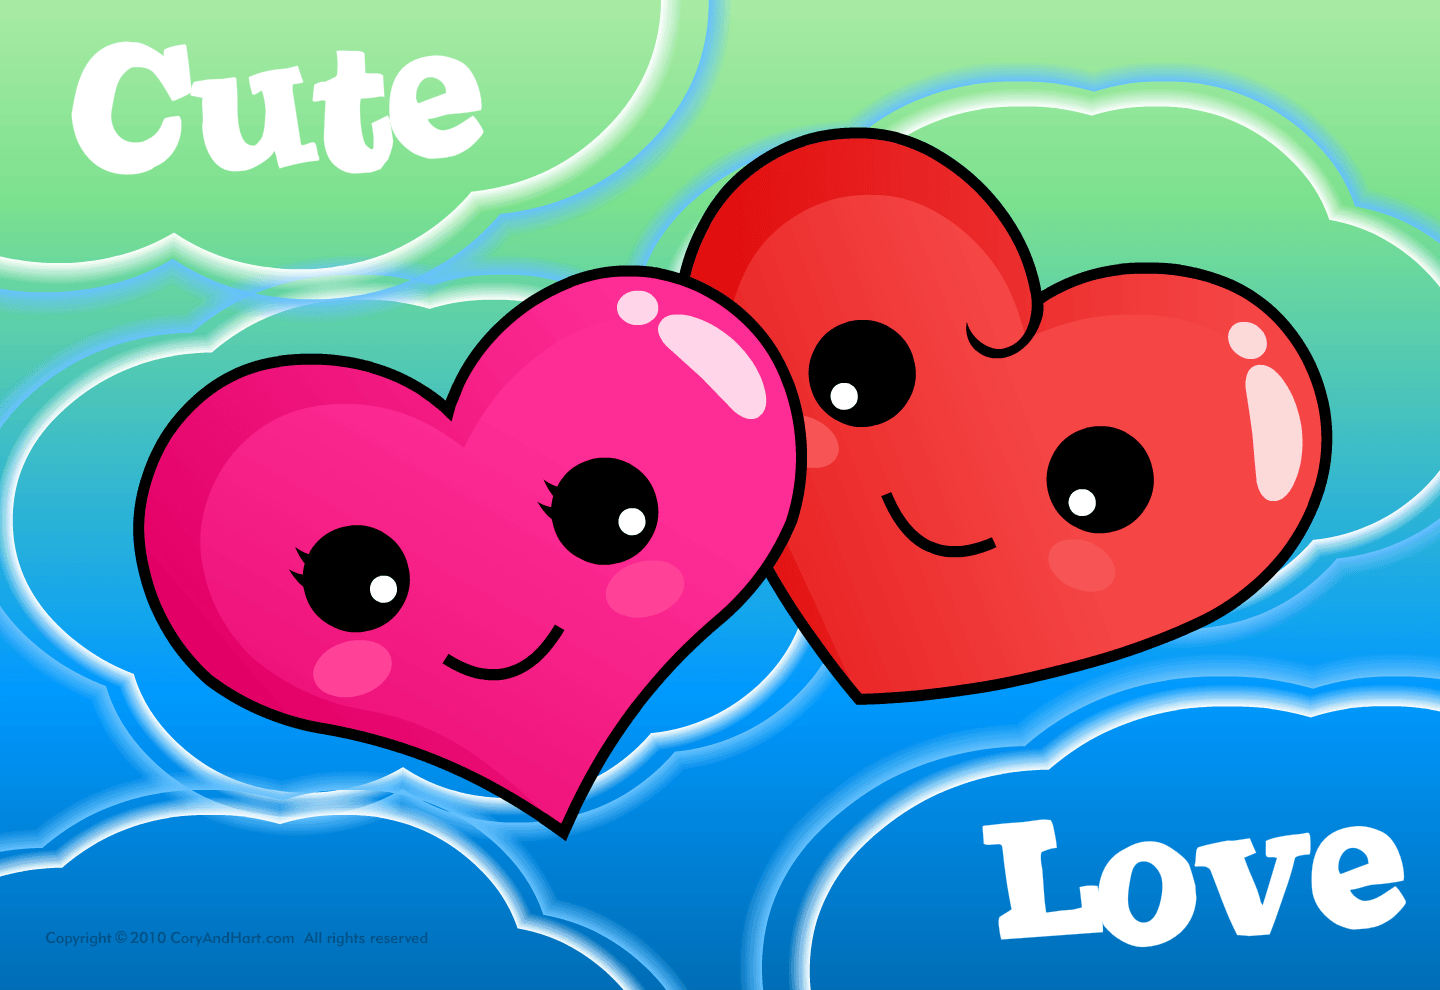 cute I Love You Wallpaper For Mobile : Love cute Wallpapers - Wallpaper cave